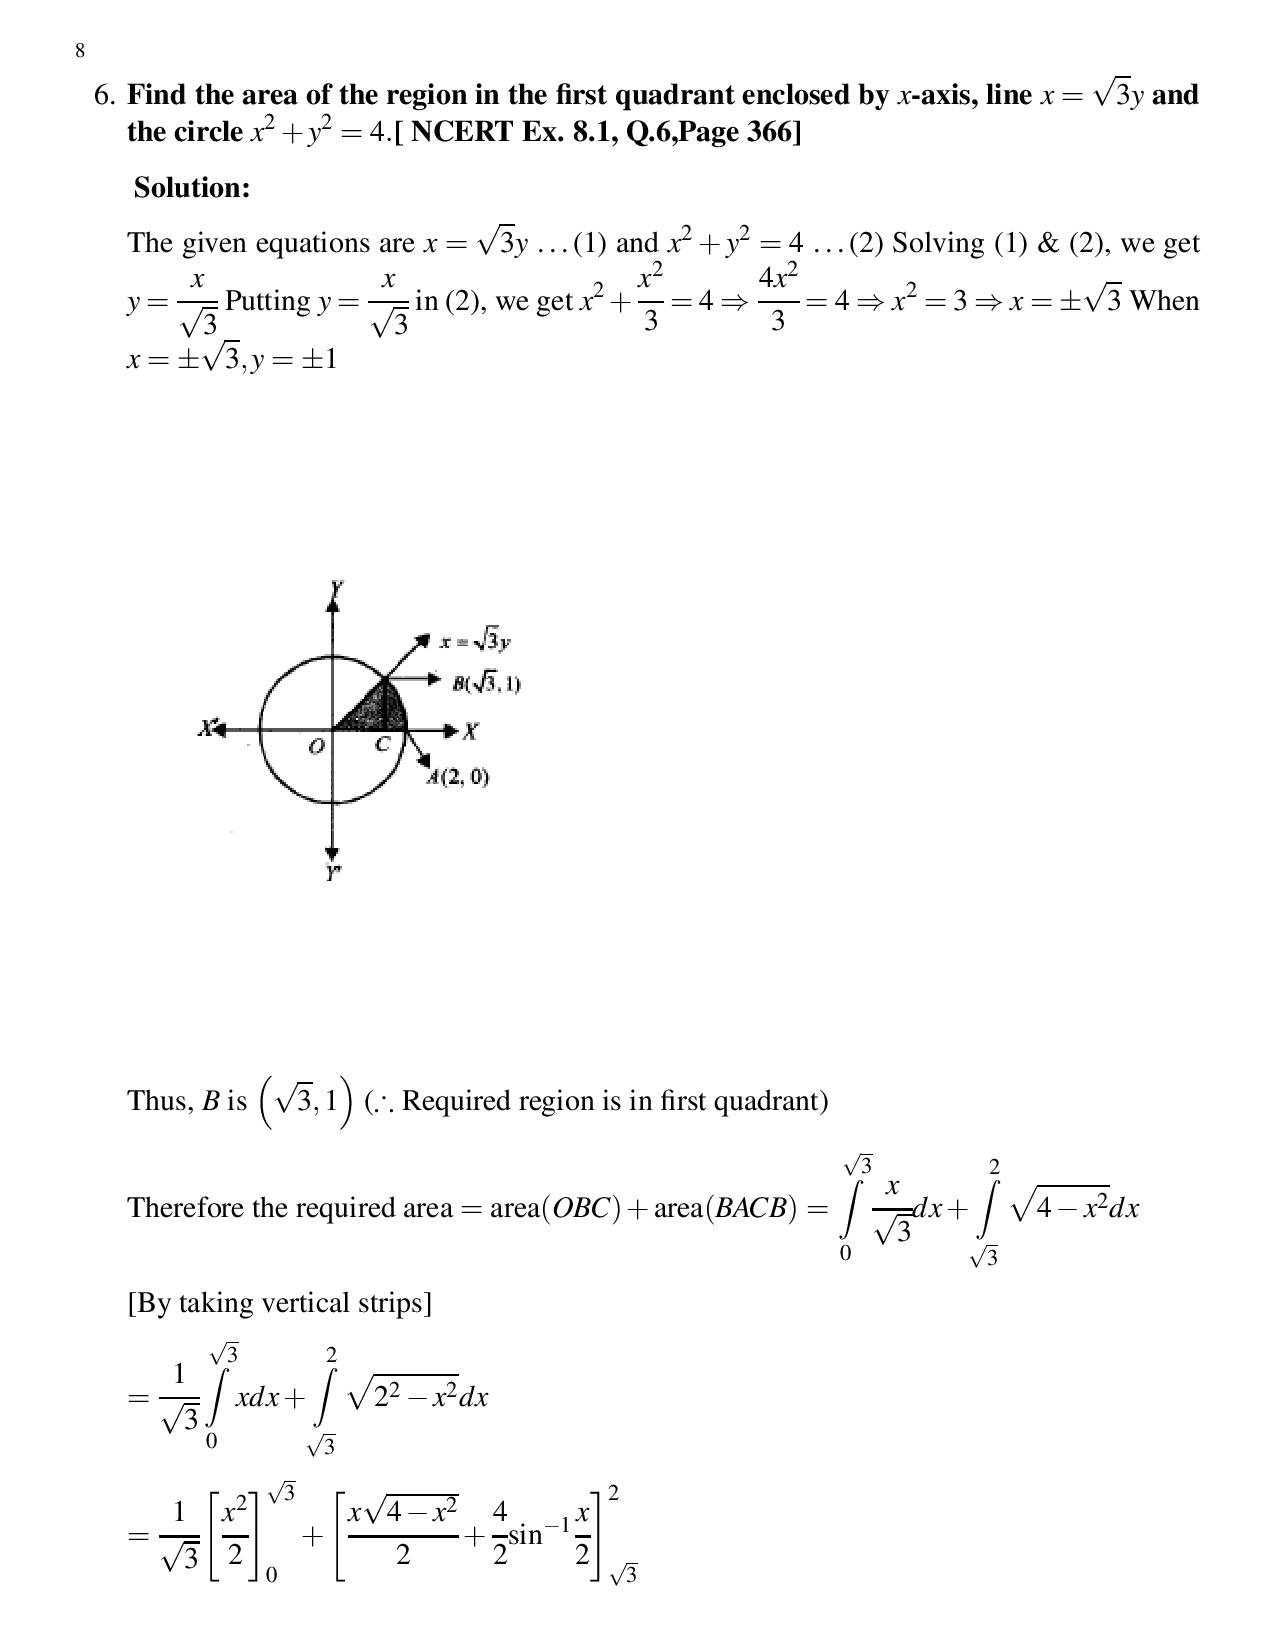 Find the area of the region in the first quadrant enclosed by x-axis, line x = \sqrt 3 y and the circle x^2 + y^2 = 4[ NCERT Ex. 8.1, Q.6,Page 366]